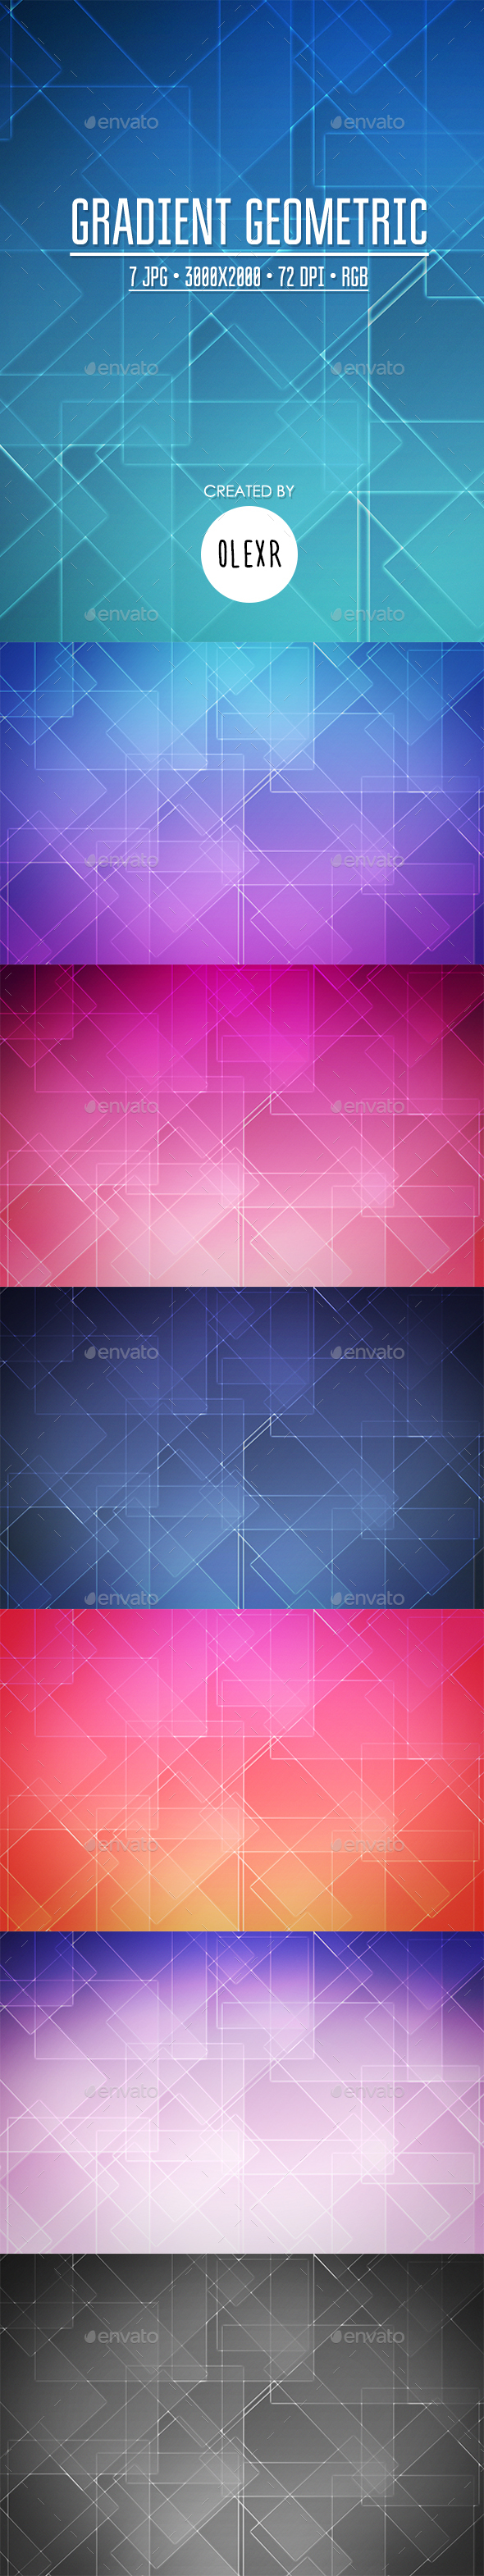 Gradient Geometric Backgrounds